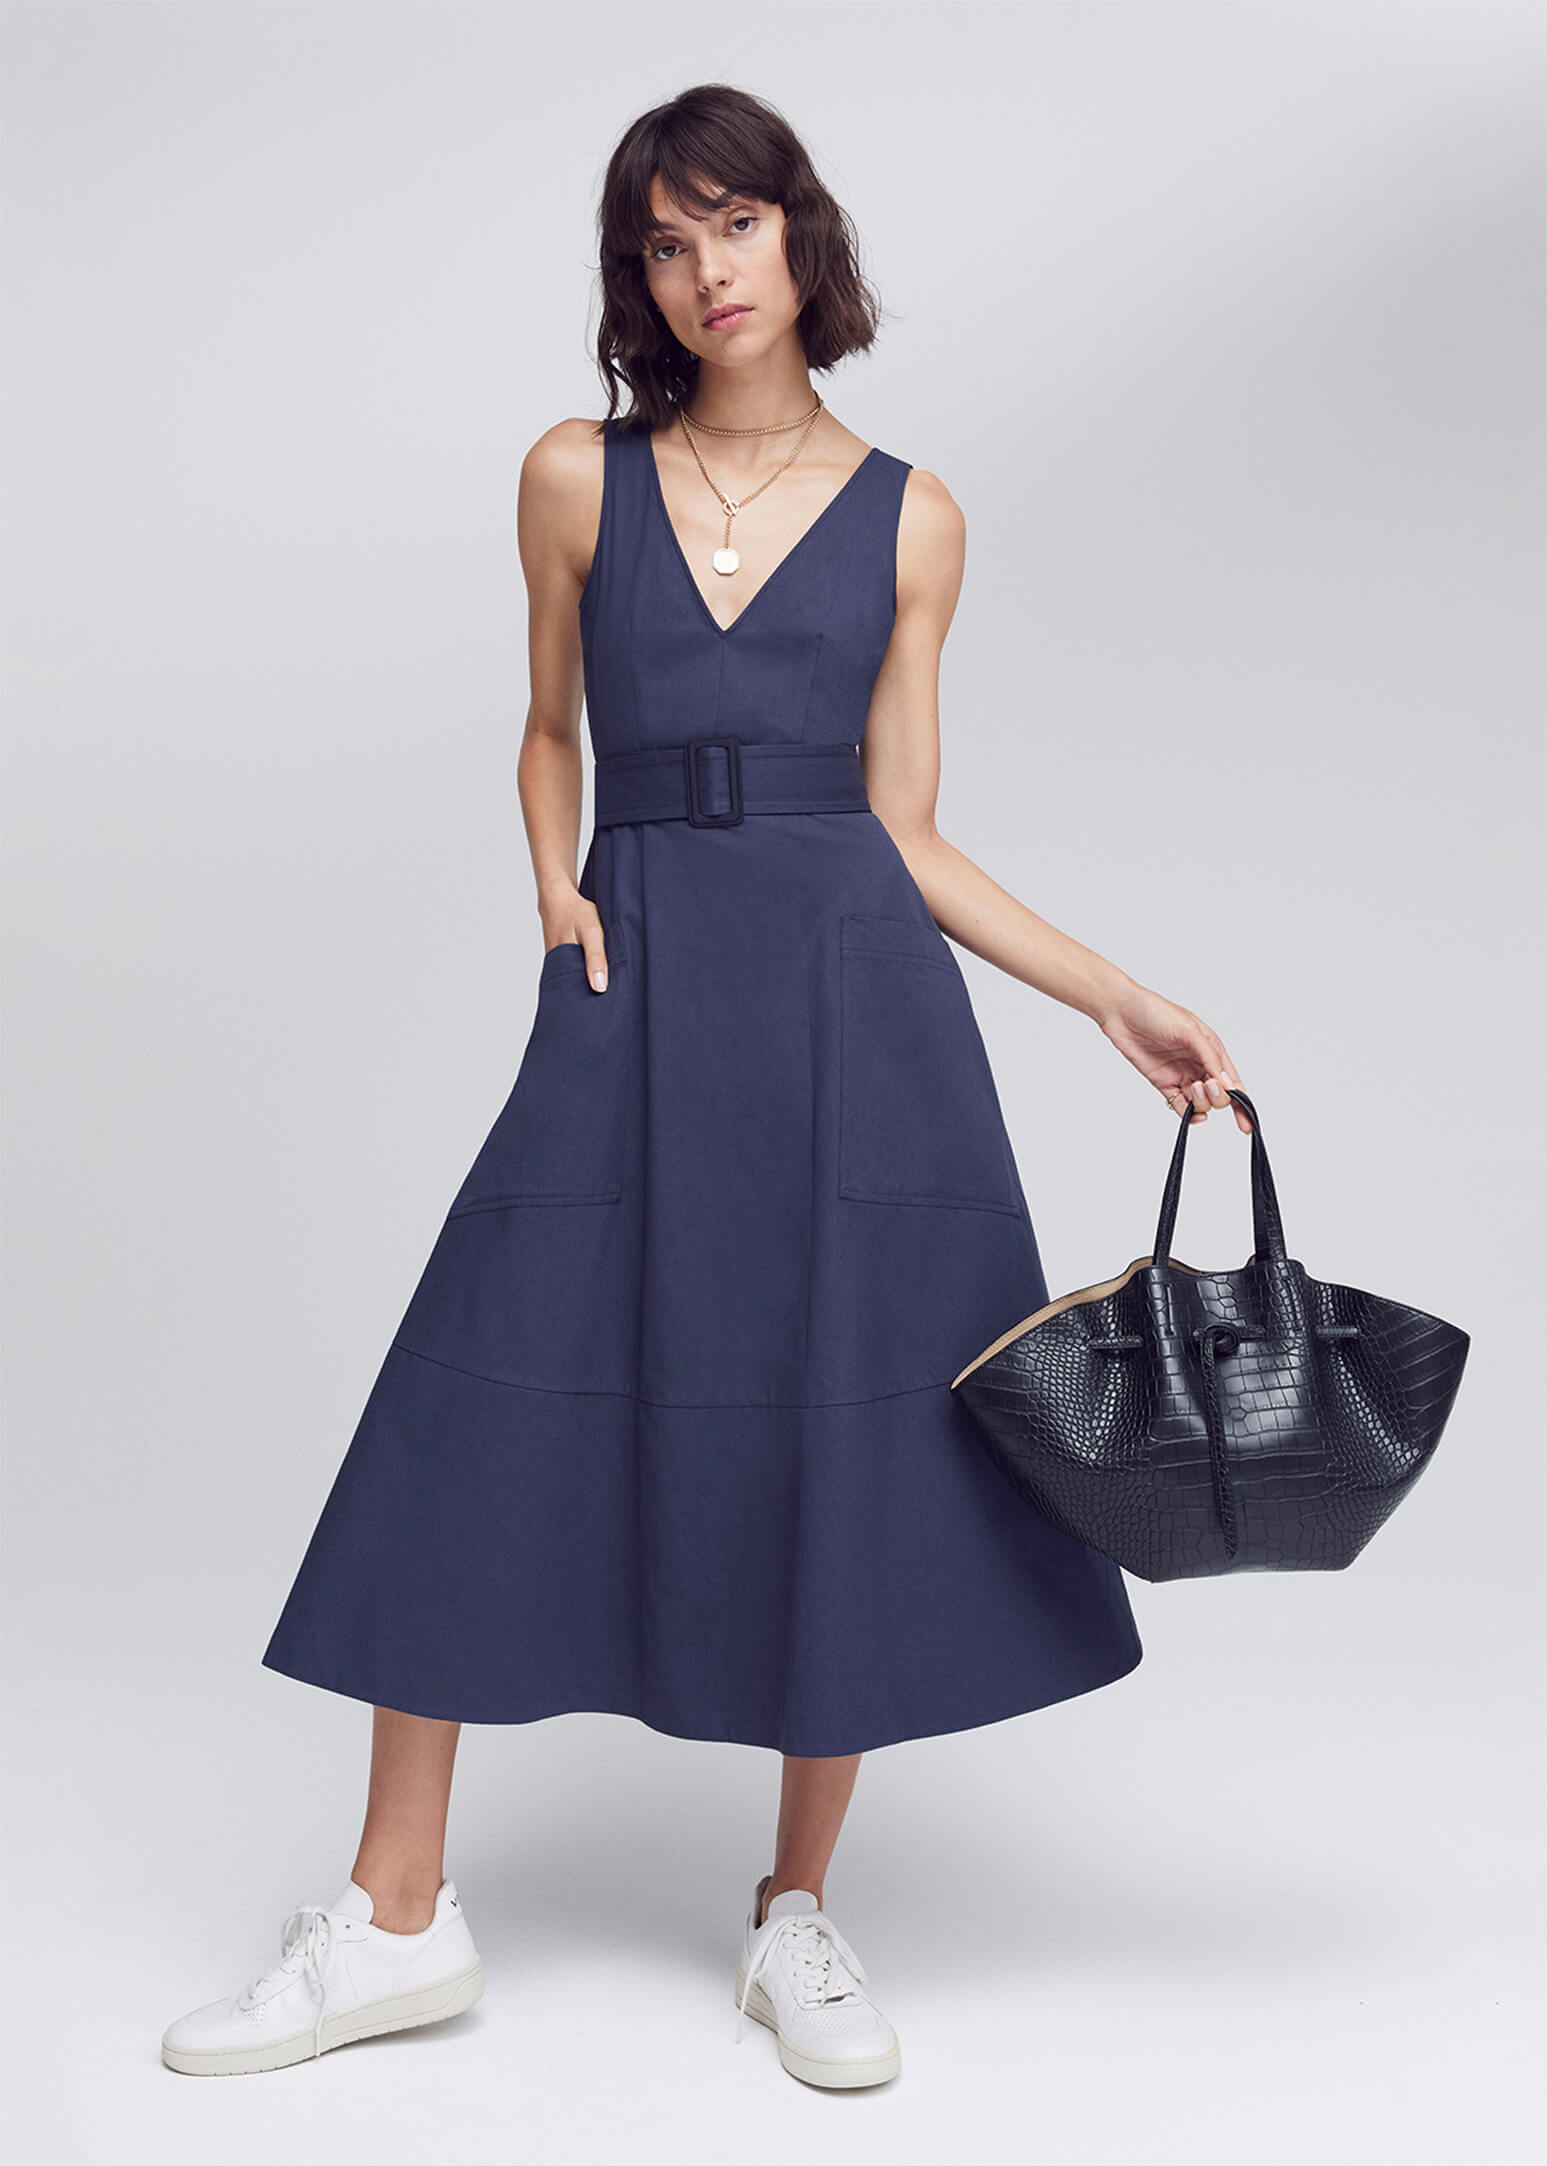 G. Label Lolo Belted Dress